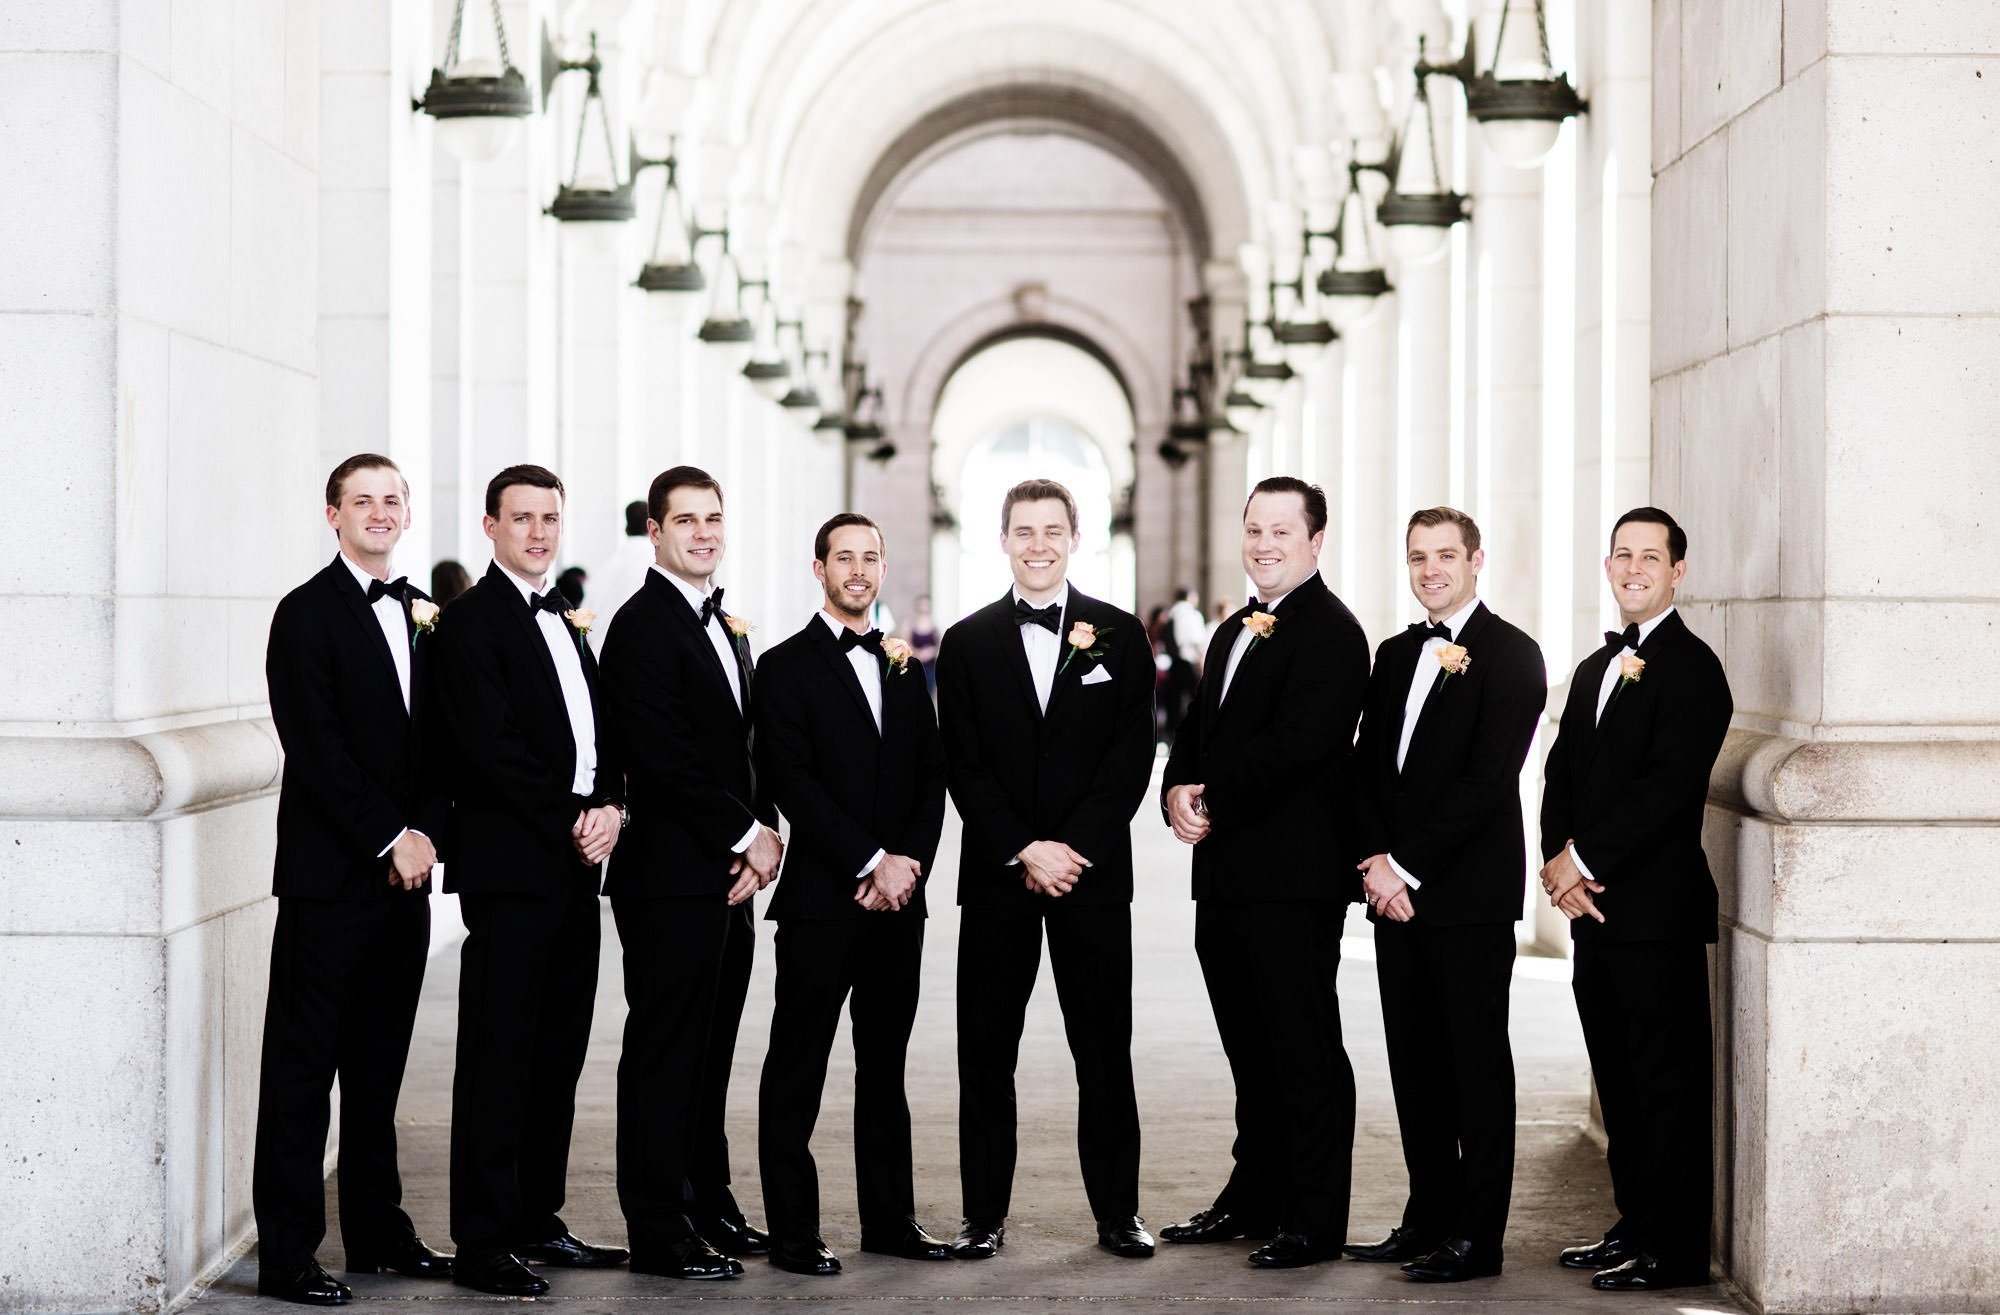 The groomsmen pose for a portrait at Union Station prior to the wedding ceremony.